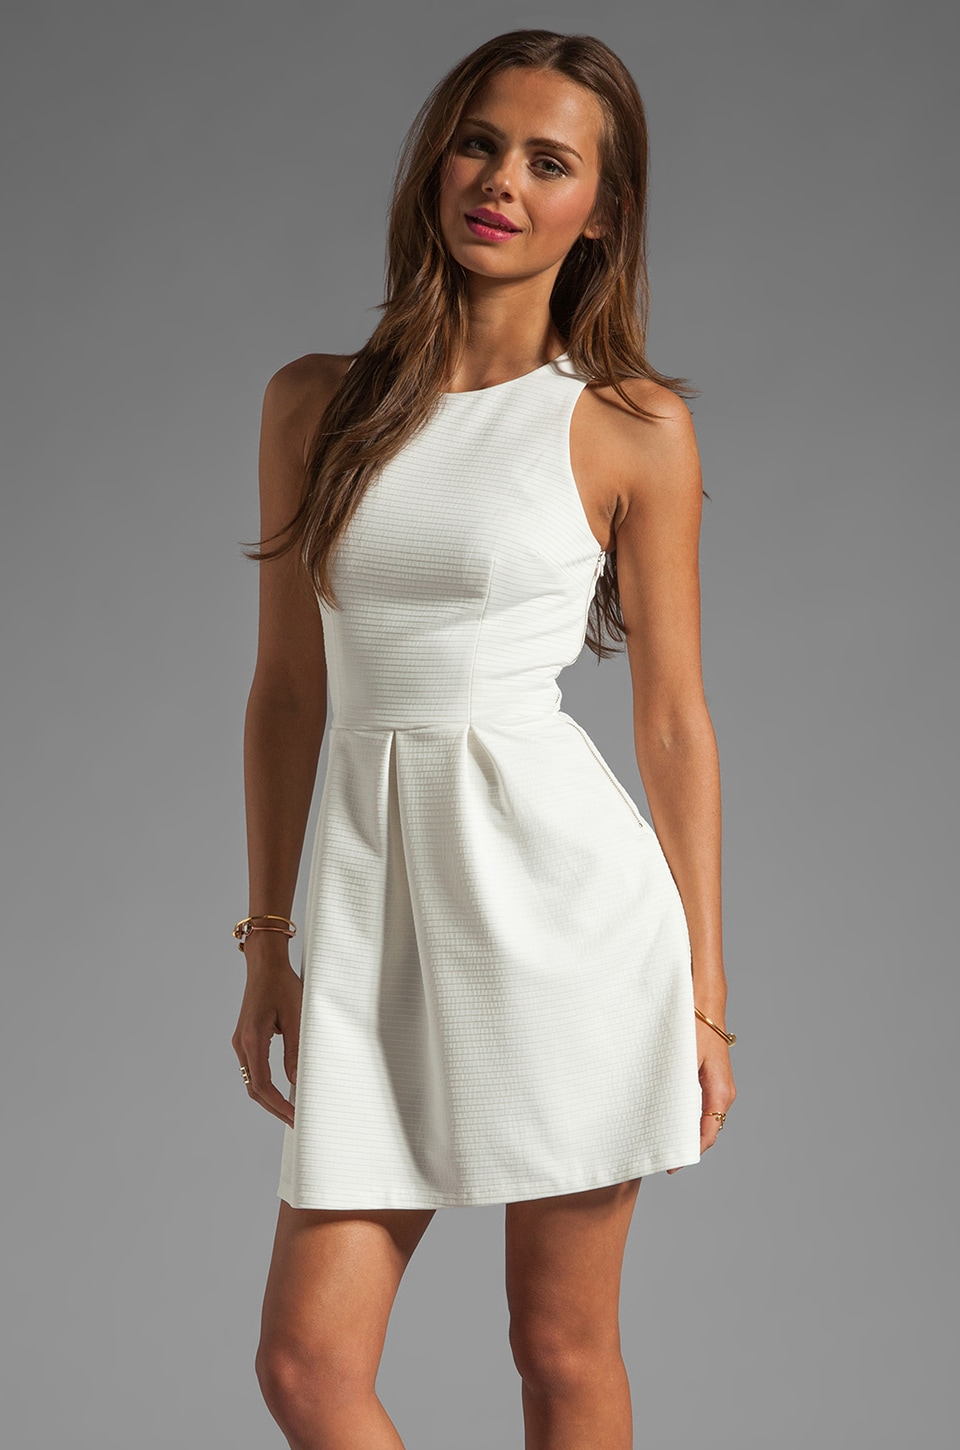 Finders Keepers Distant Dreamer Dress in White